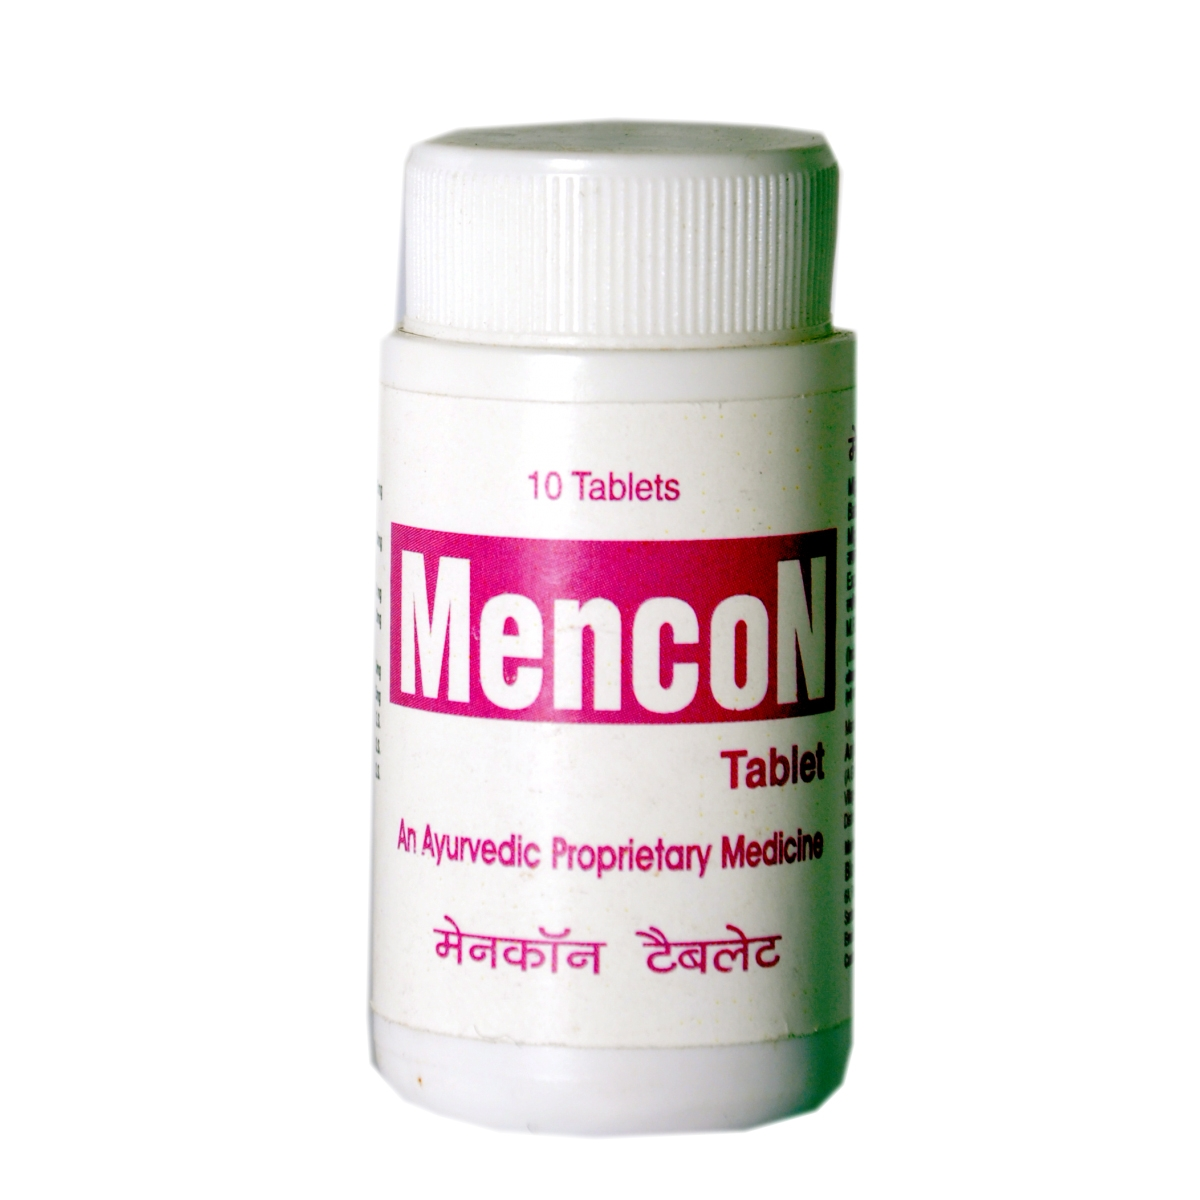 Mencon Tablet In Cuttack